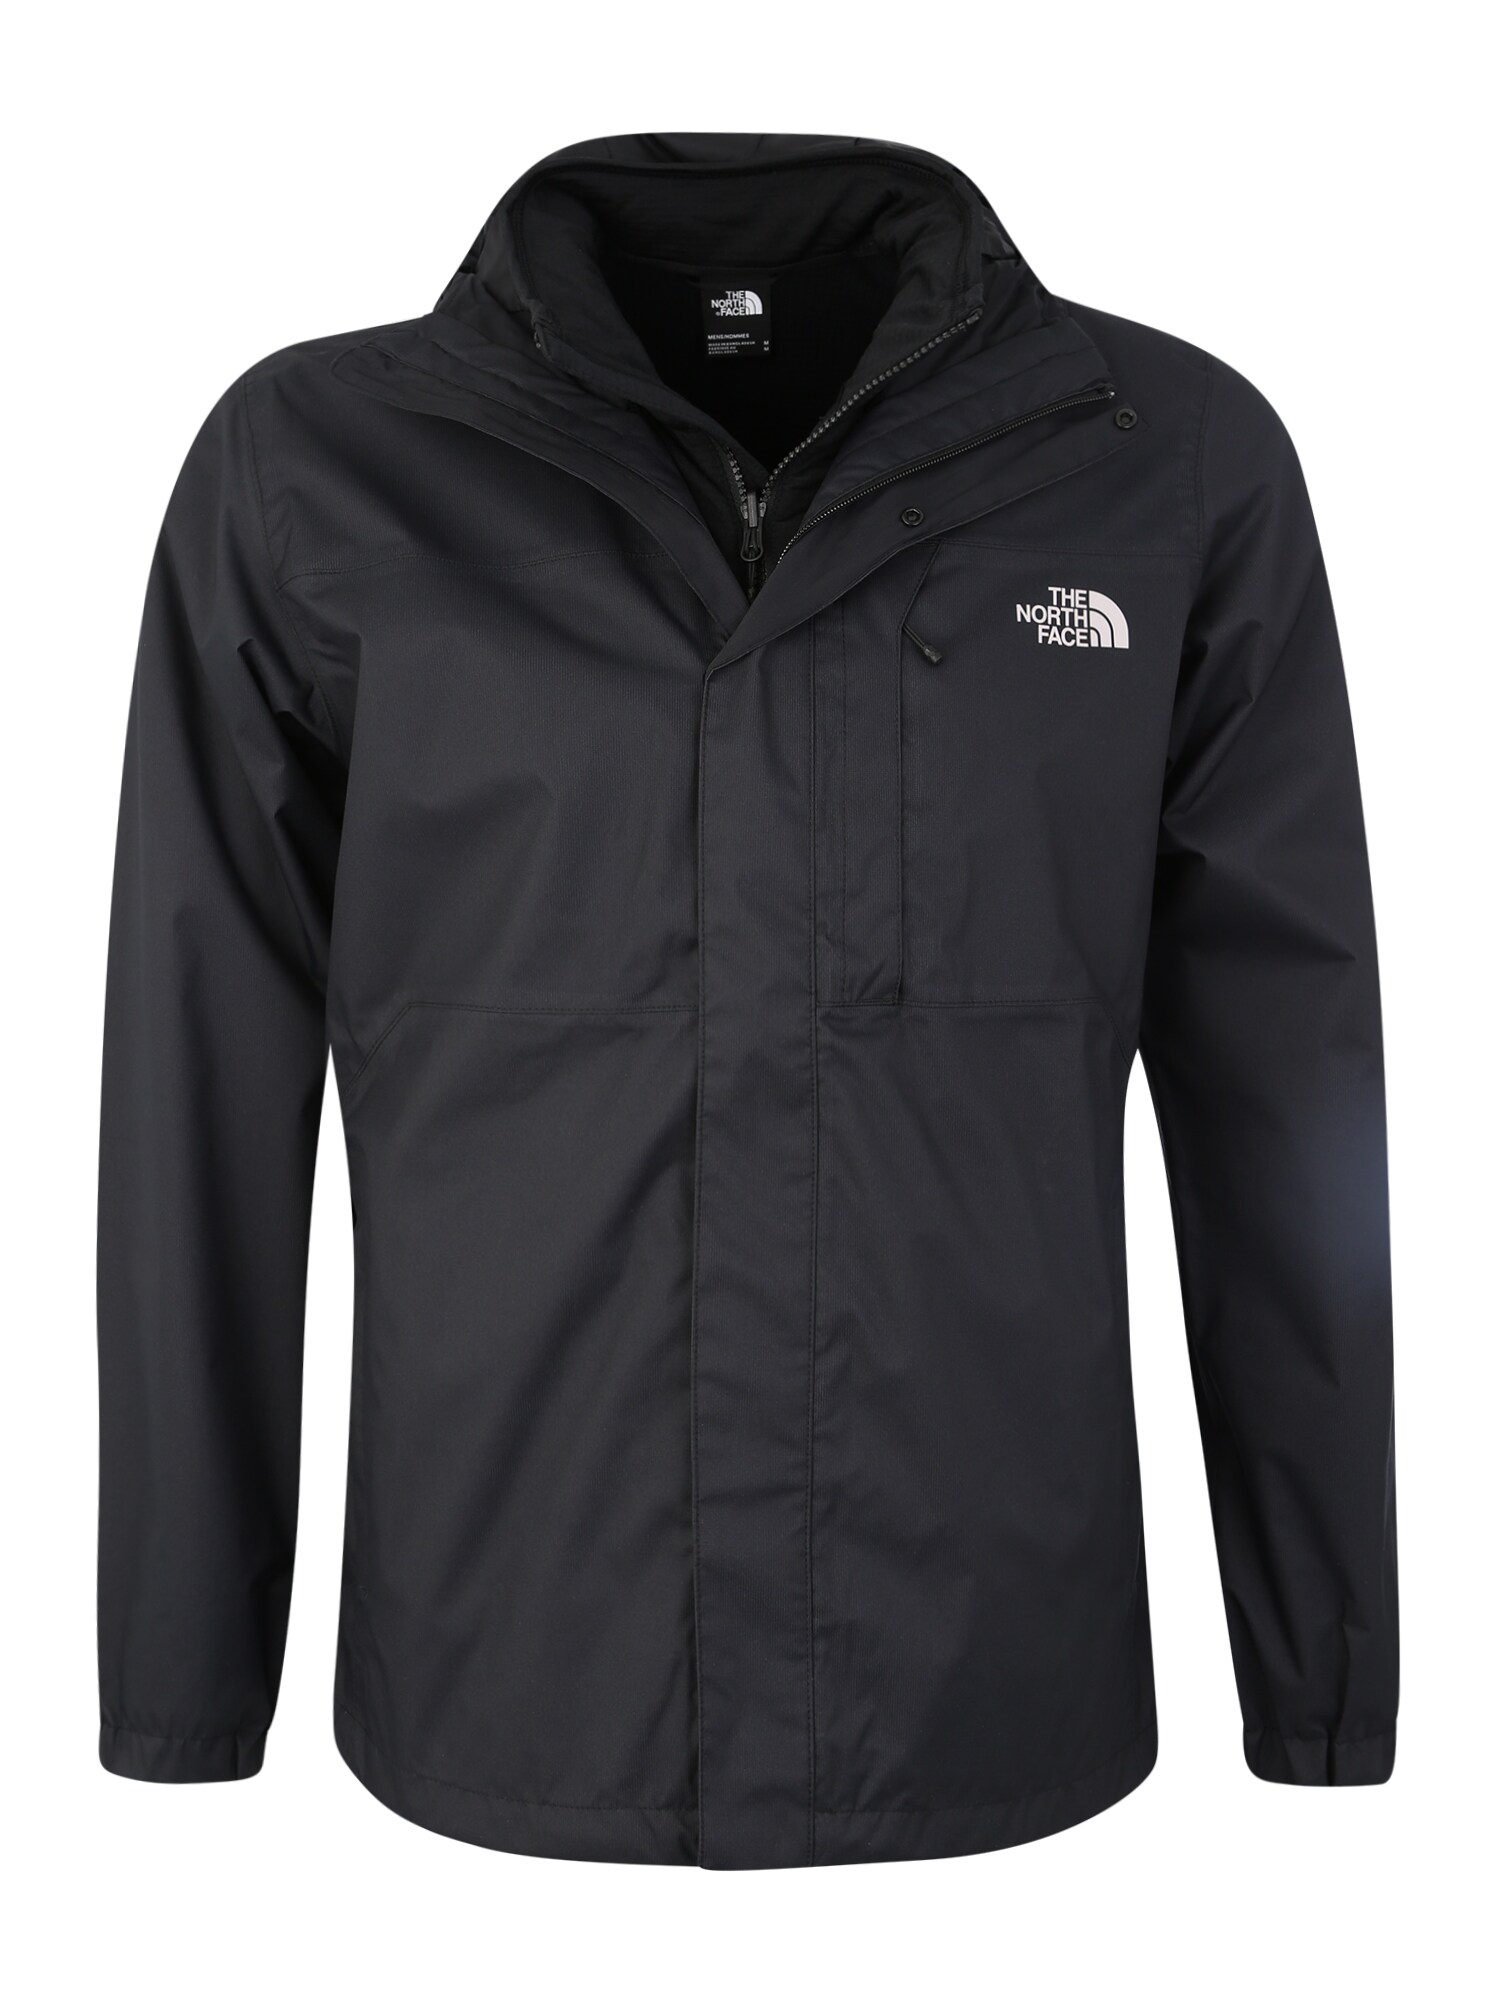 THE NORTH FACE Sportovní bunda Men's Quest Triclimate® Jacket černá bílá The North Face